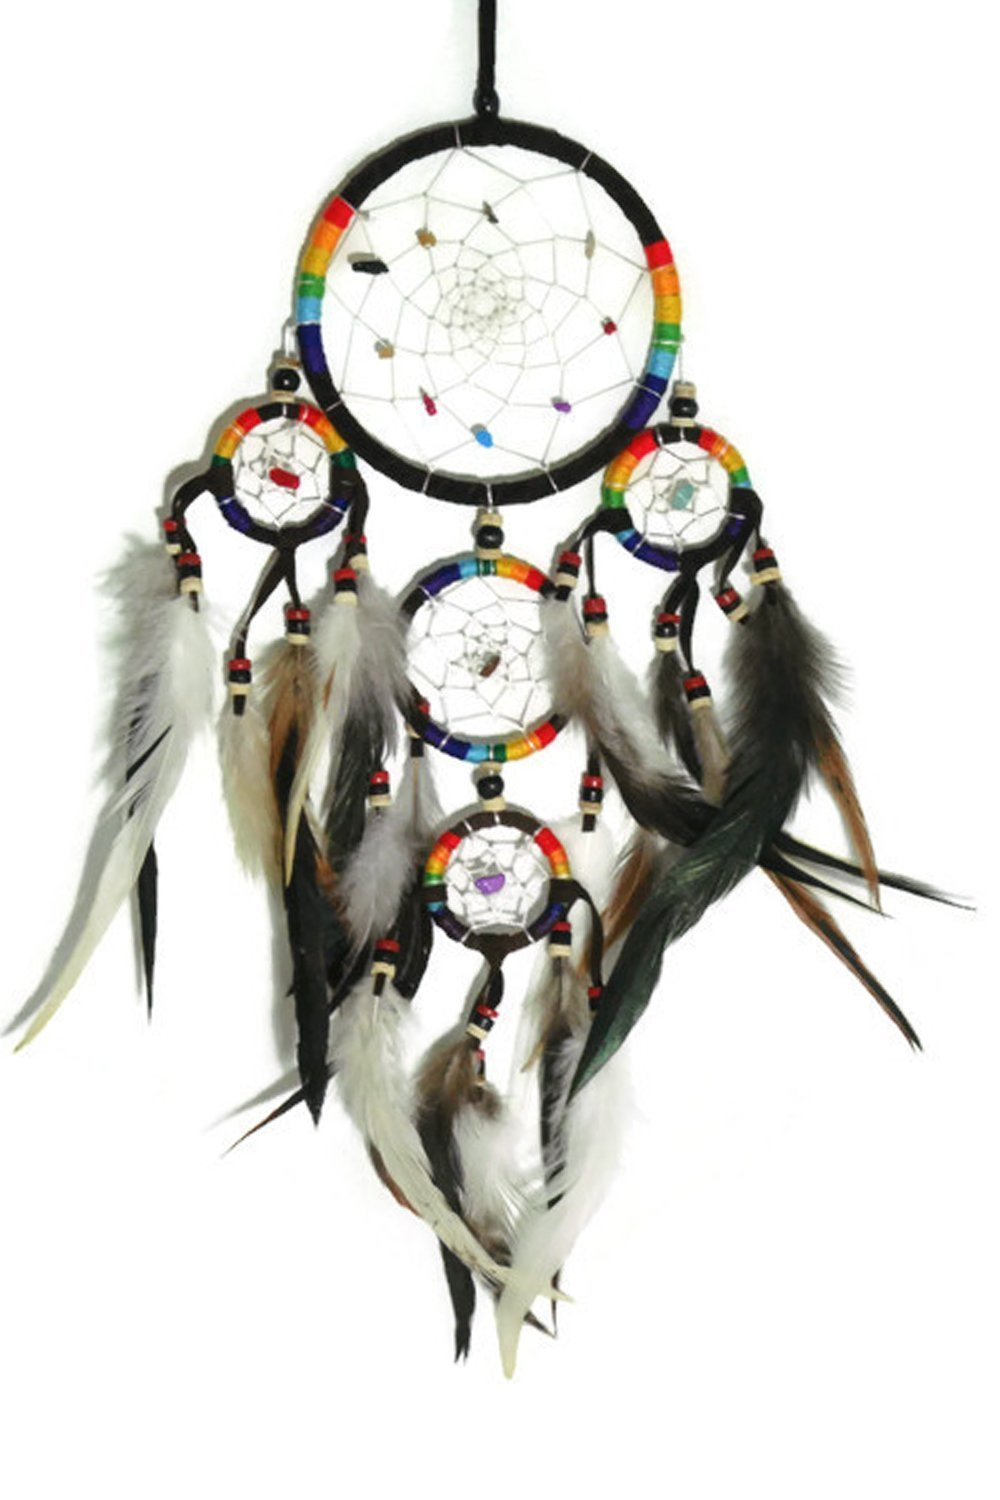 Bright Multi Colors DMD4 APECTO Handmade Dream Catcher Circular Net with Feathers Wall Hanging Decor Ornament Craft Dark Brown